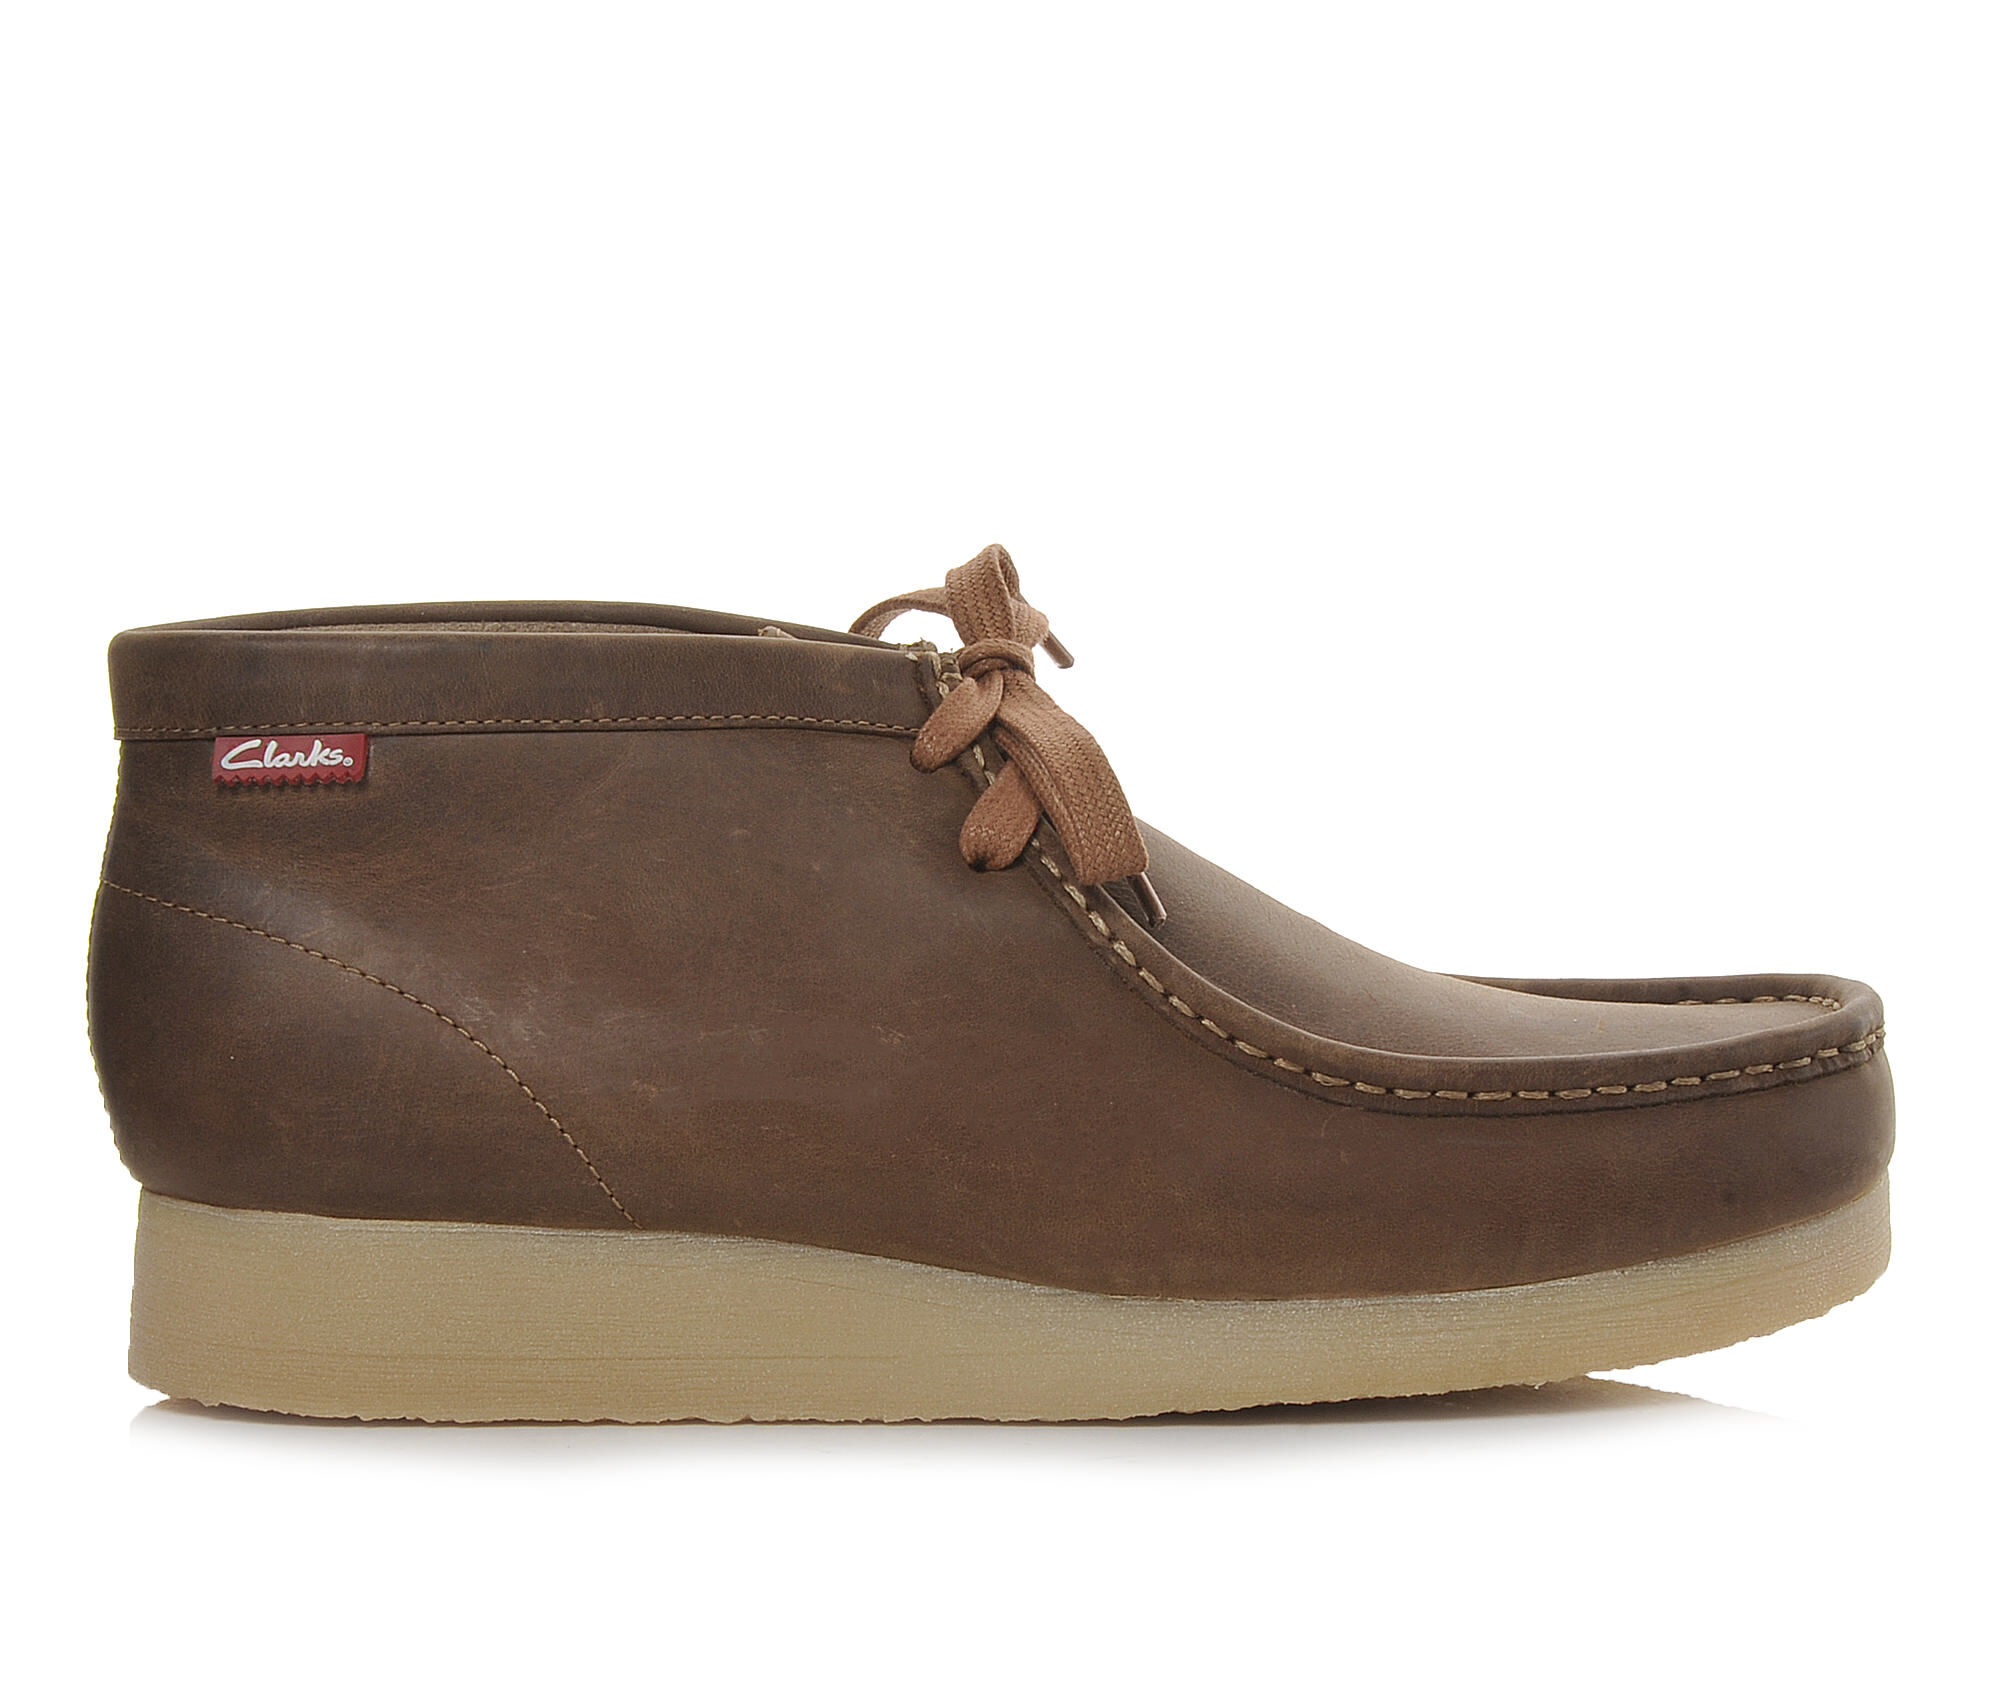 Men's Clarks Stinson Hi Boots Beeswax